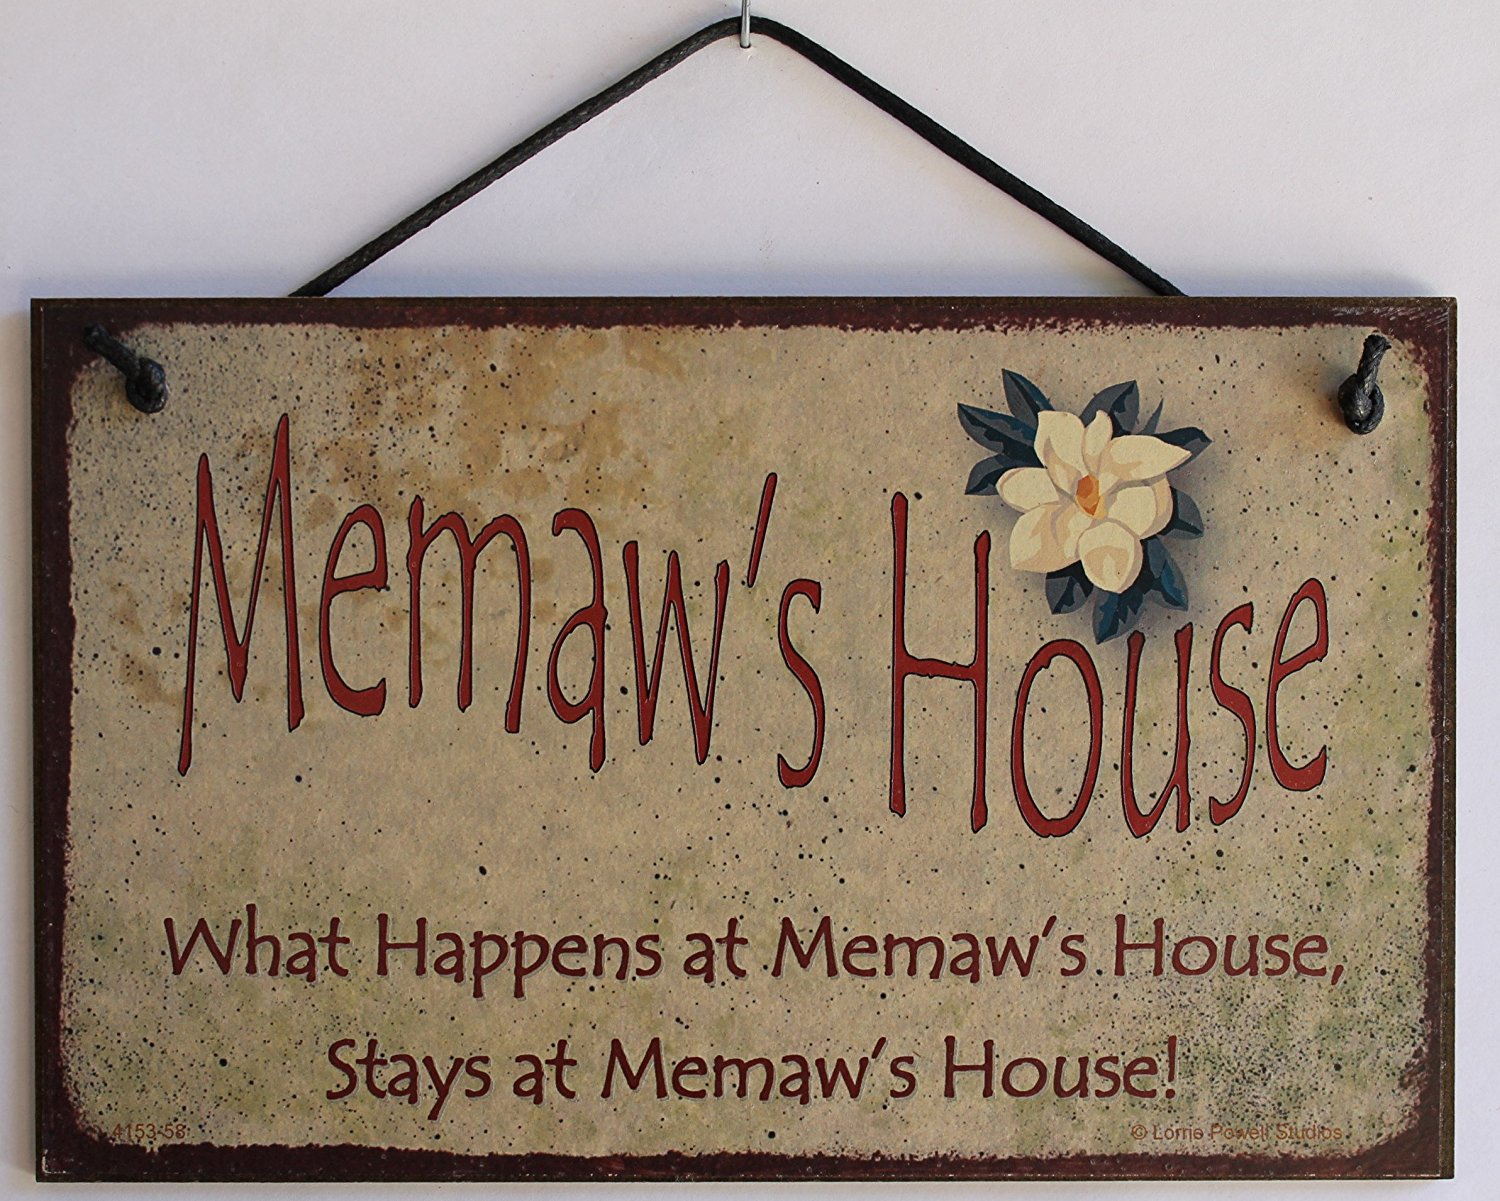 "5x8 Vintage Style Sign with Magnolia Saying, ""Memaw's House What Happens at Memaw's House, Stays at Memaw's House!"" Decorative Fun Universal Household Signs from Egbert's Treasures"